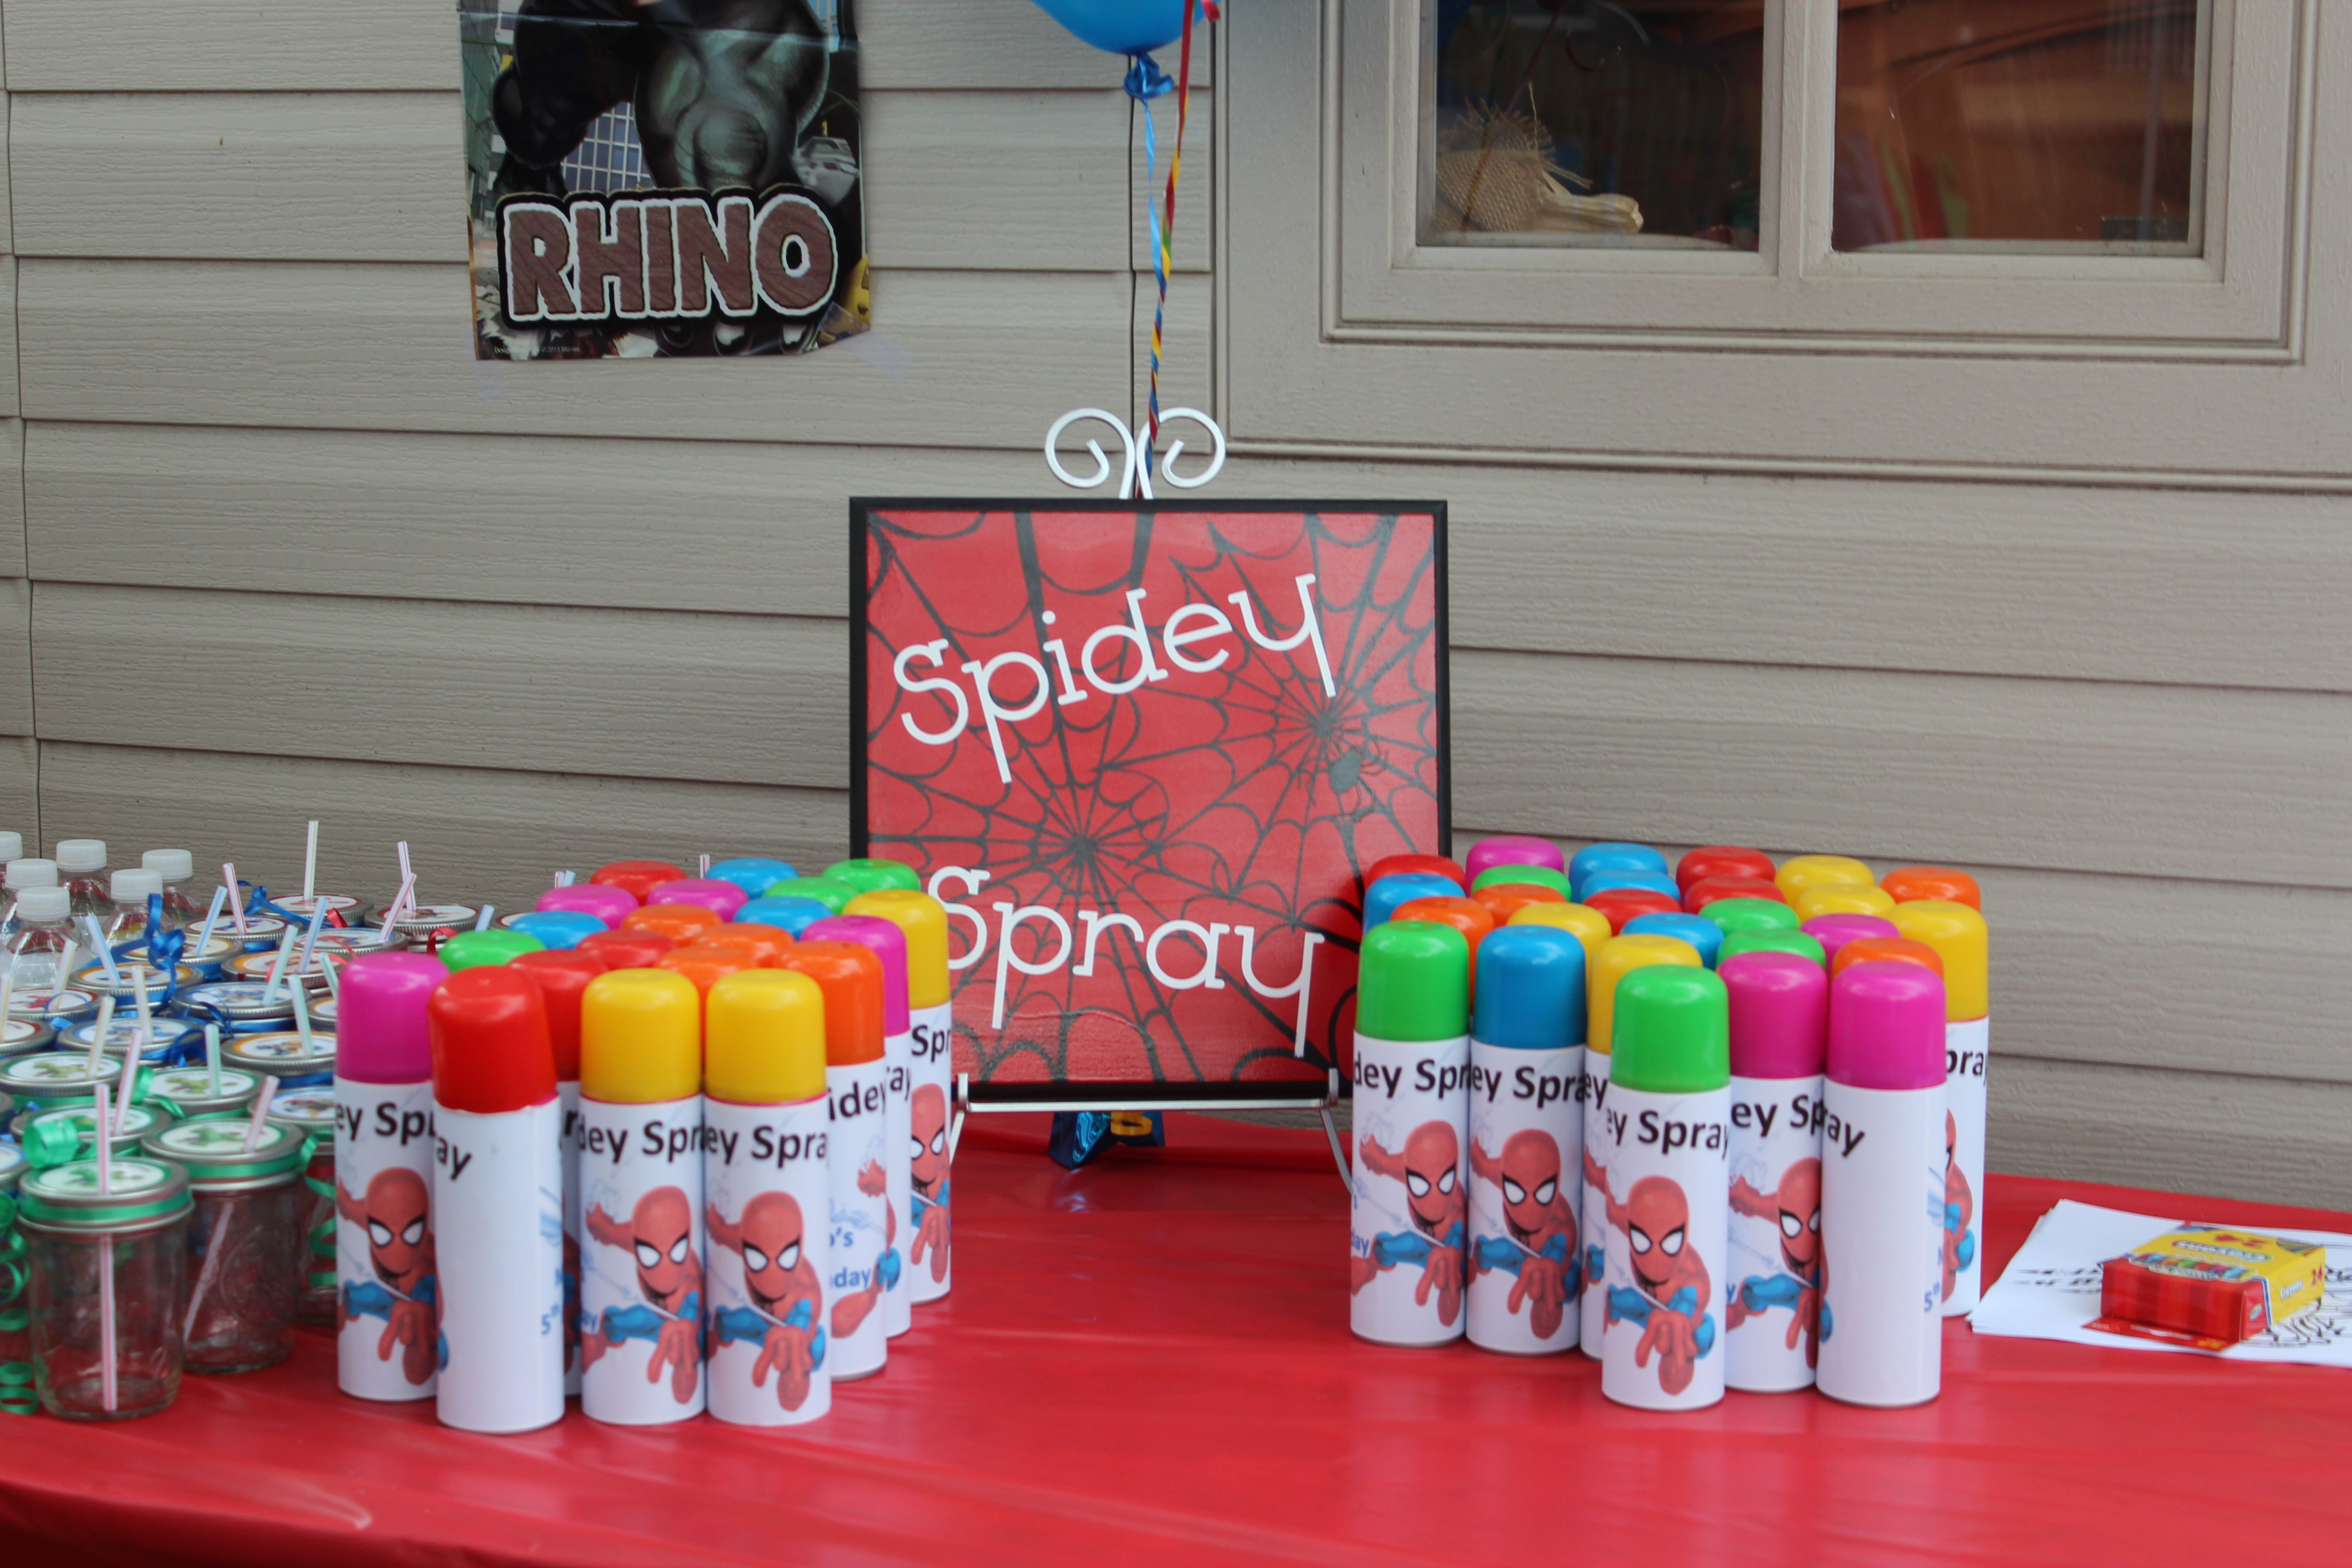 spidey silly string only can be used outside will get stuck in